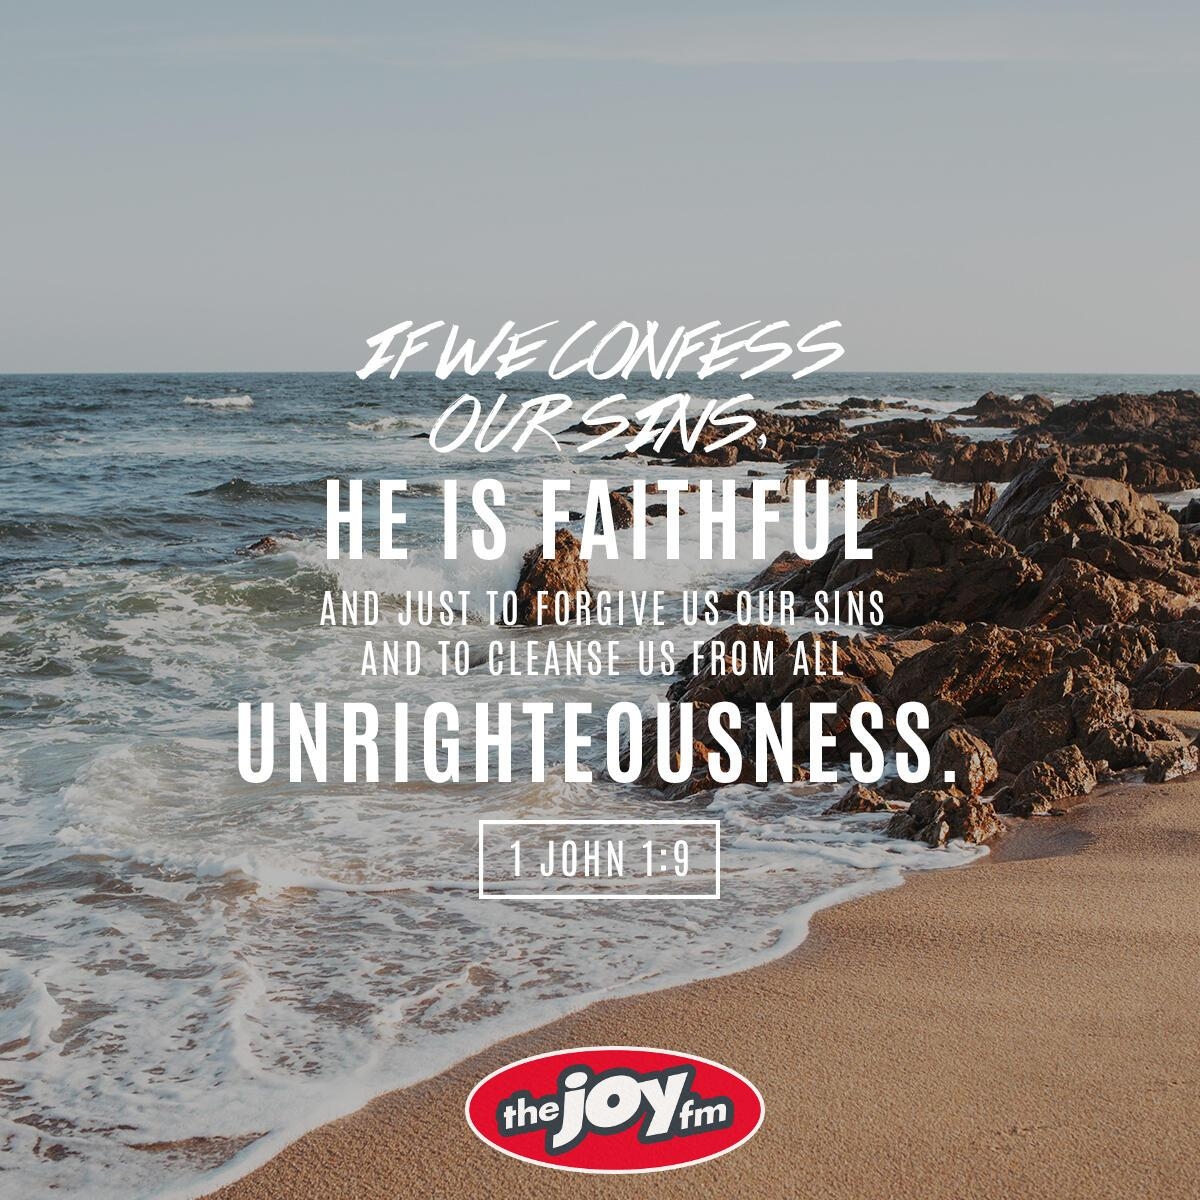 1 John 1:9 - Verse of the Day